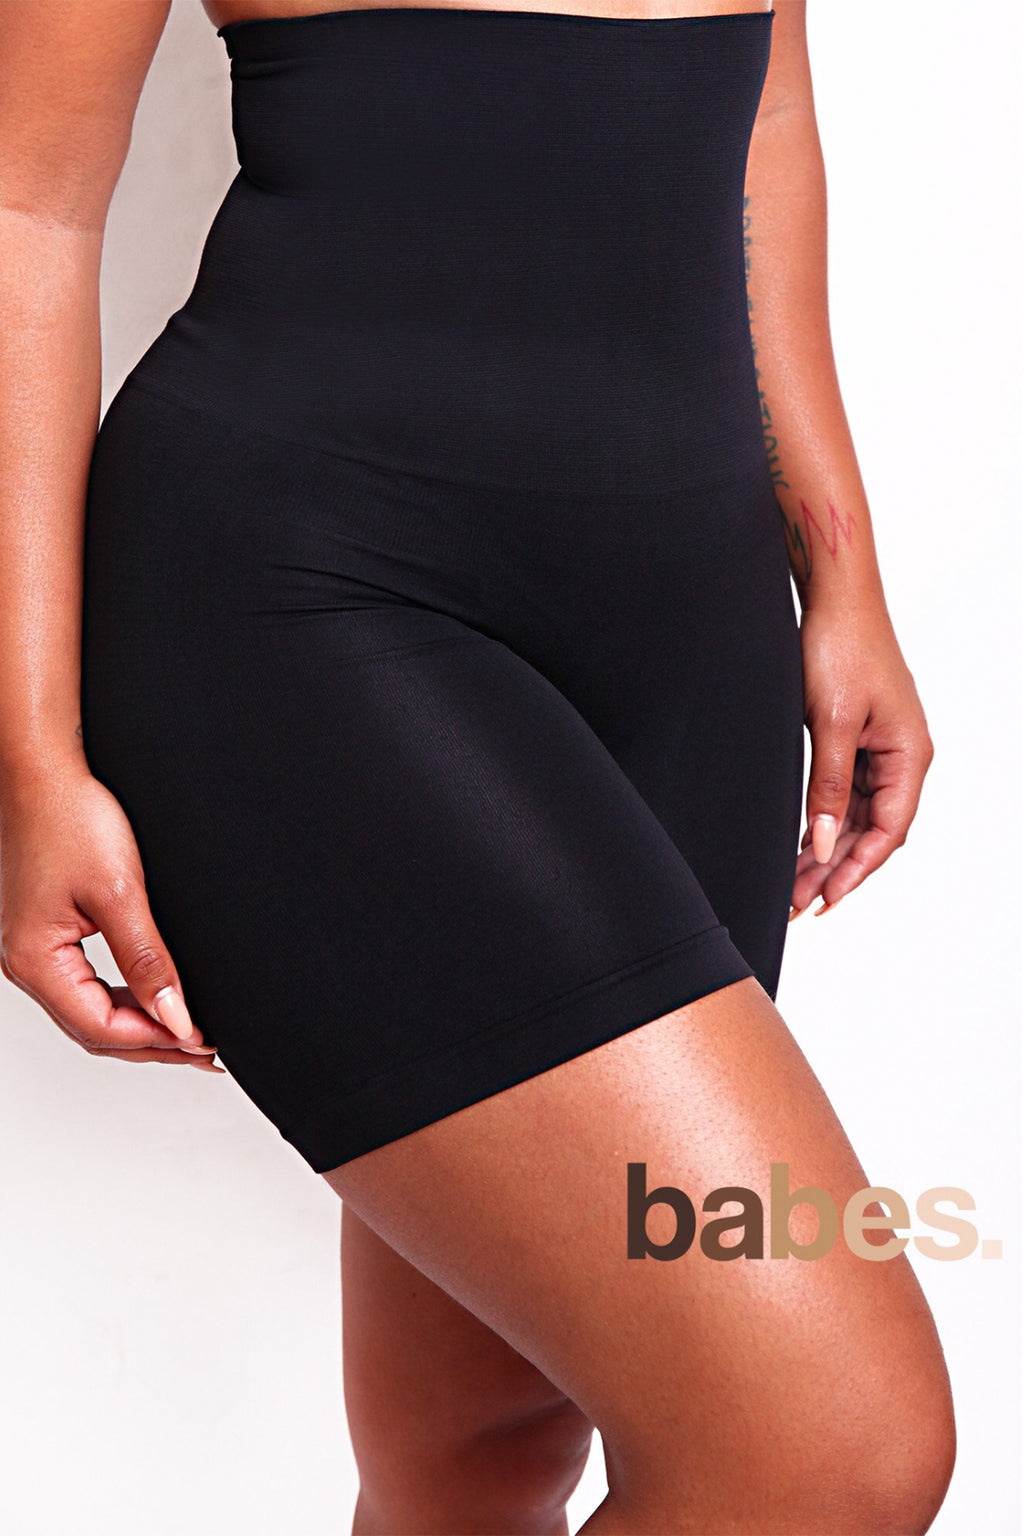 The High Waist Babe Shaper (2 Colors)